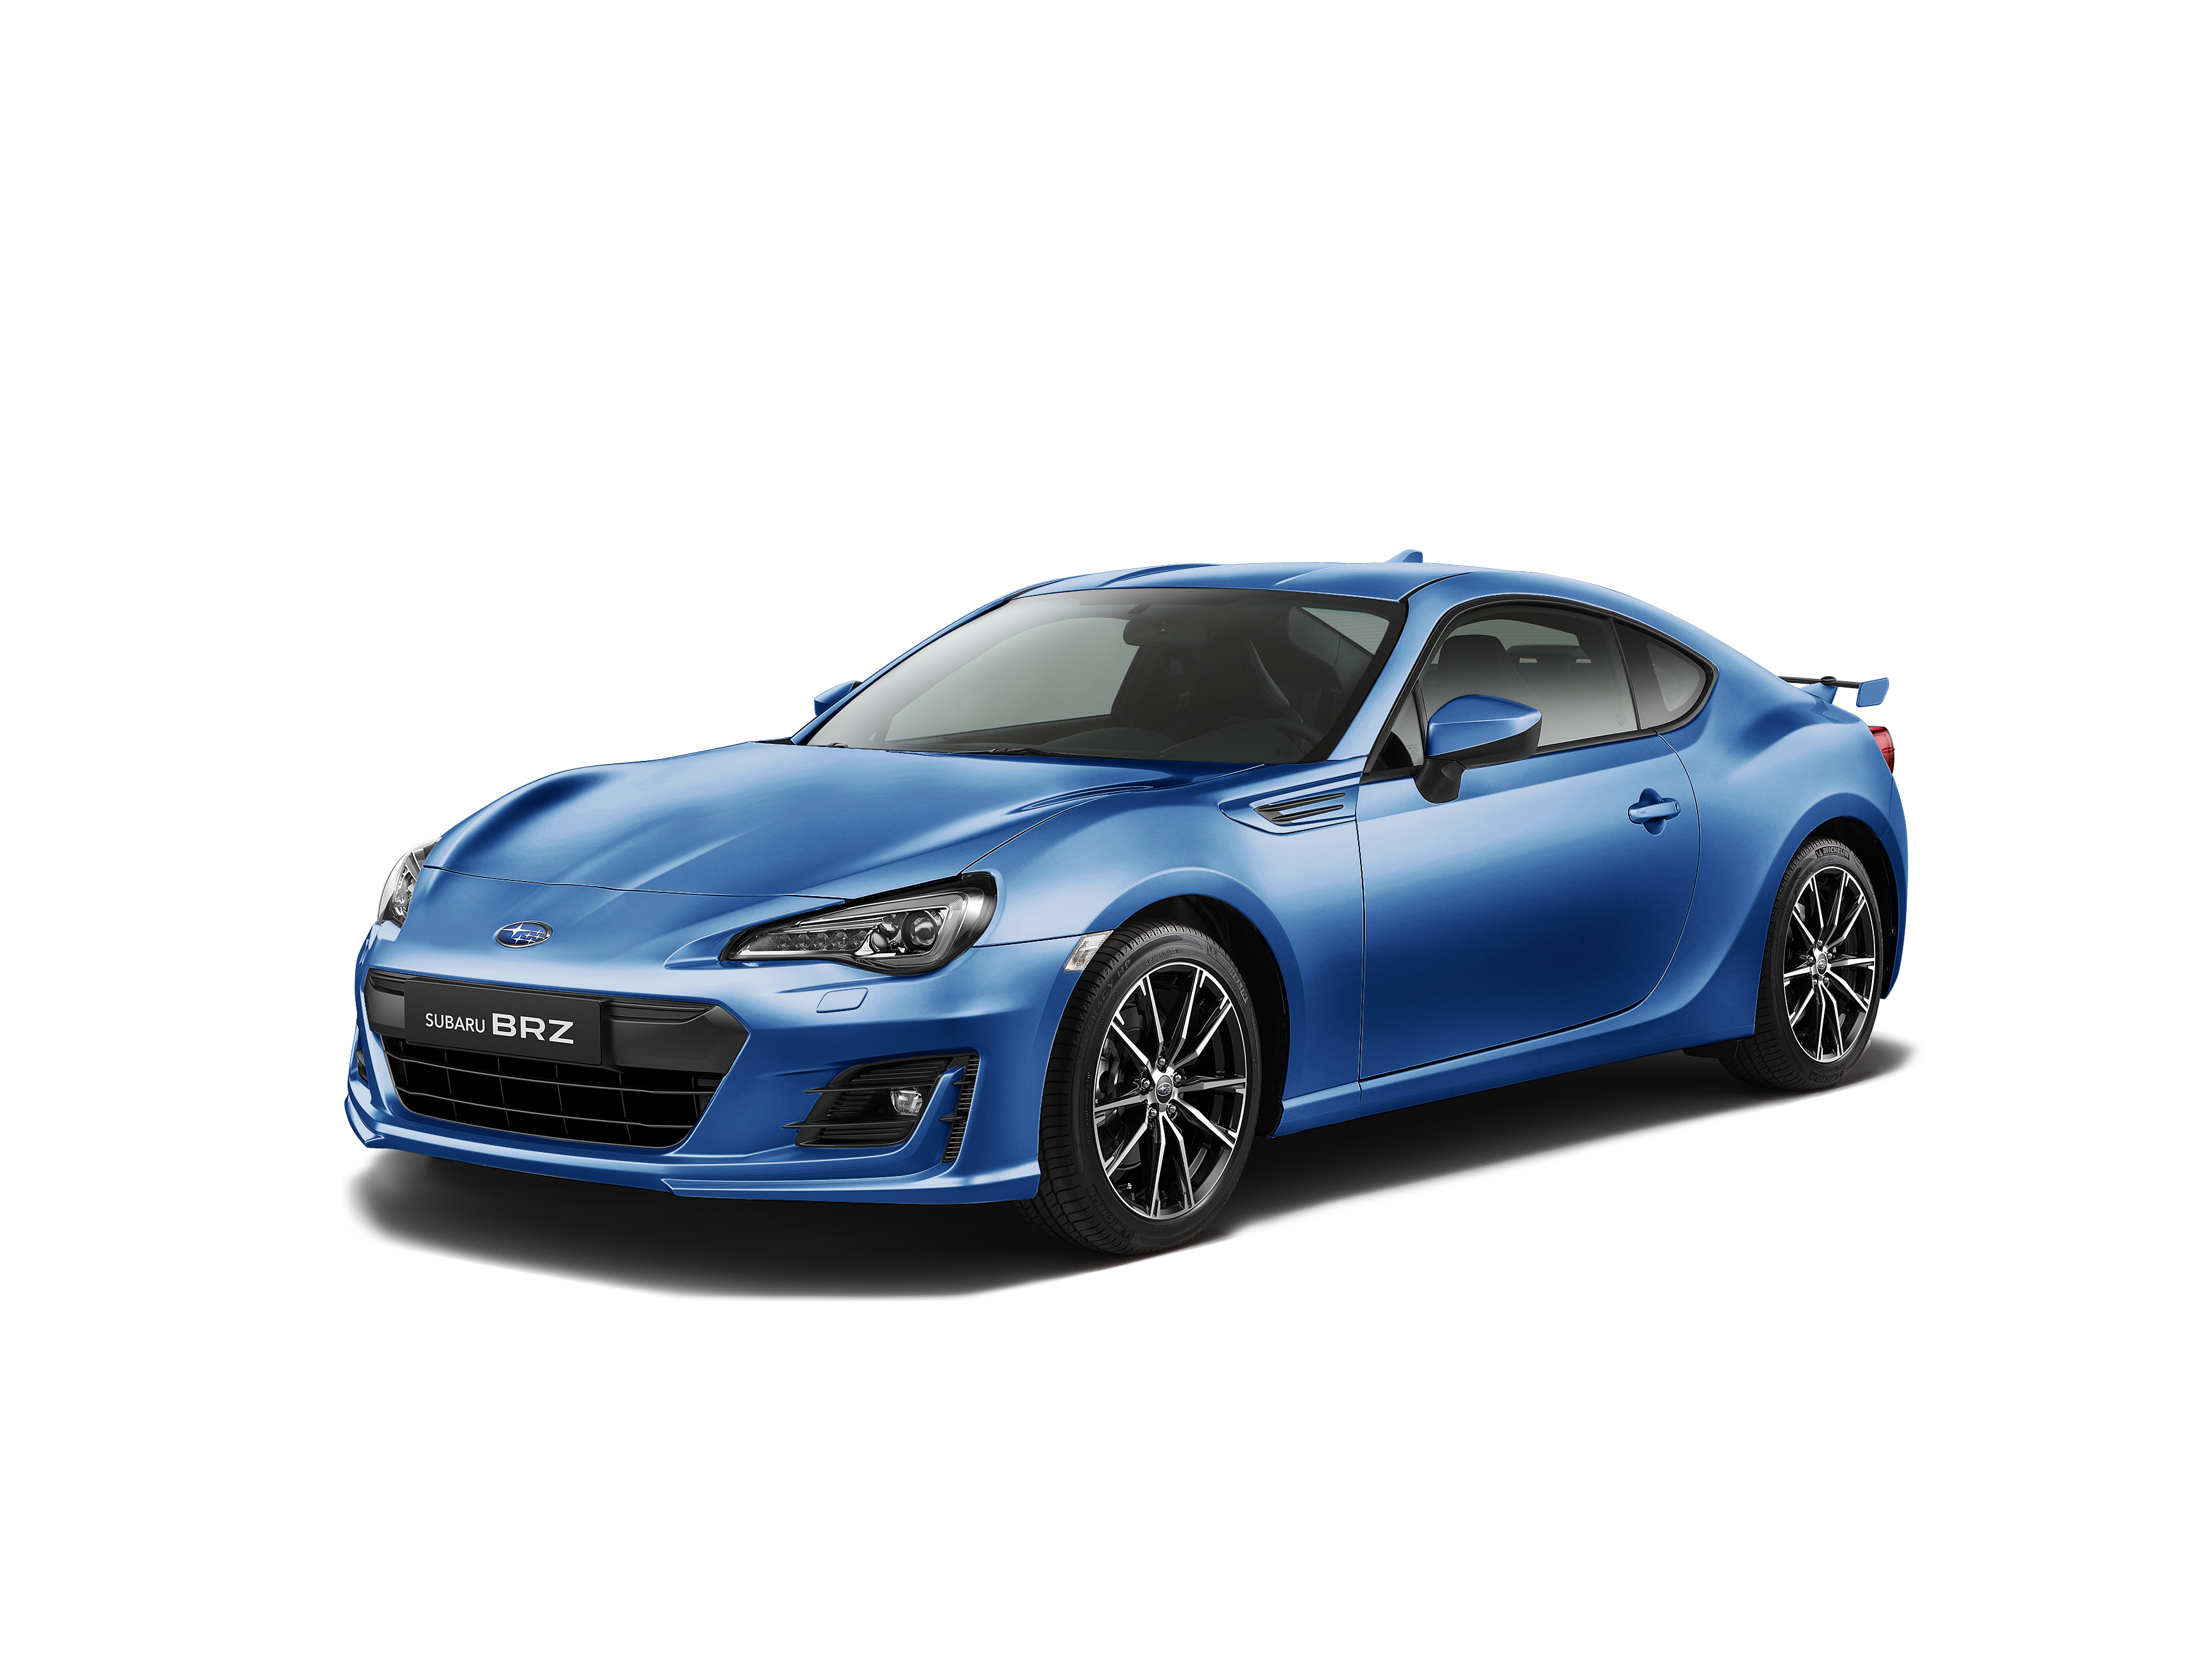 Used Subaru Brz Cars for Sale on Auto Trader UK